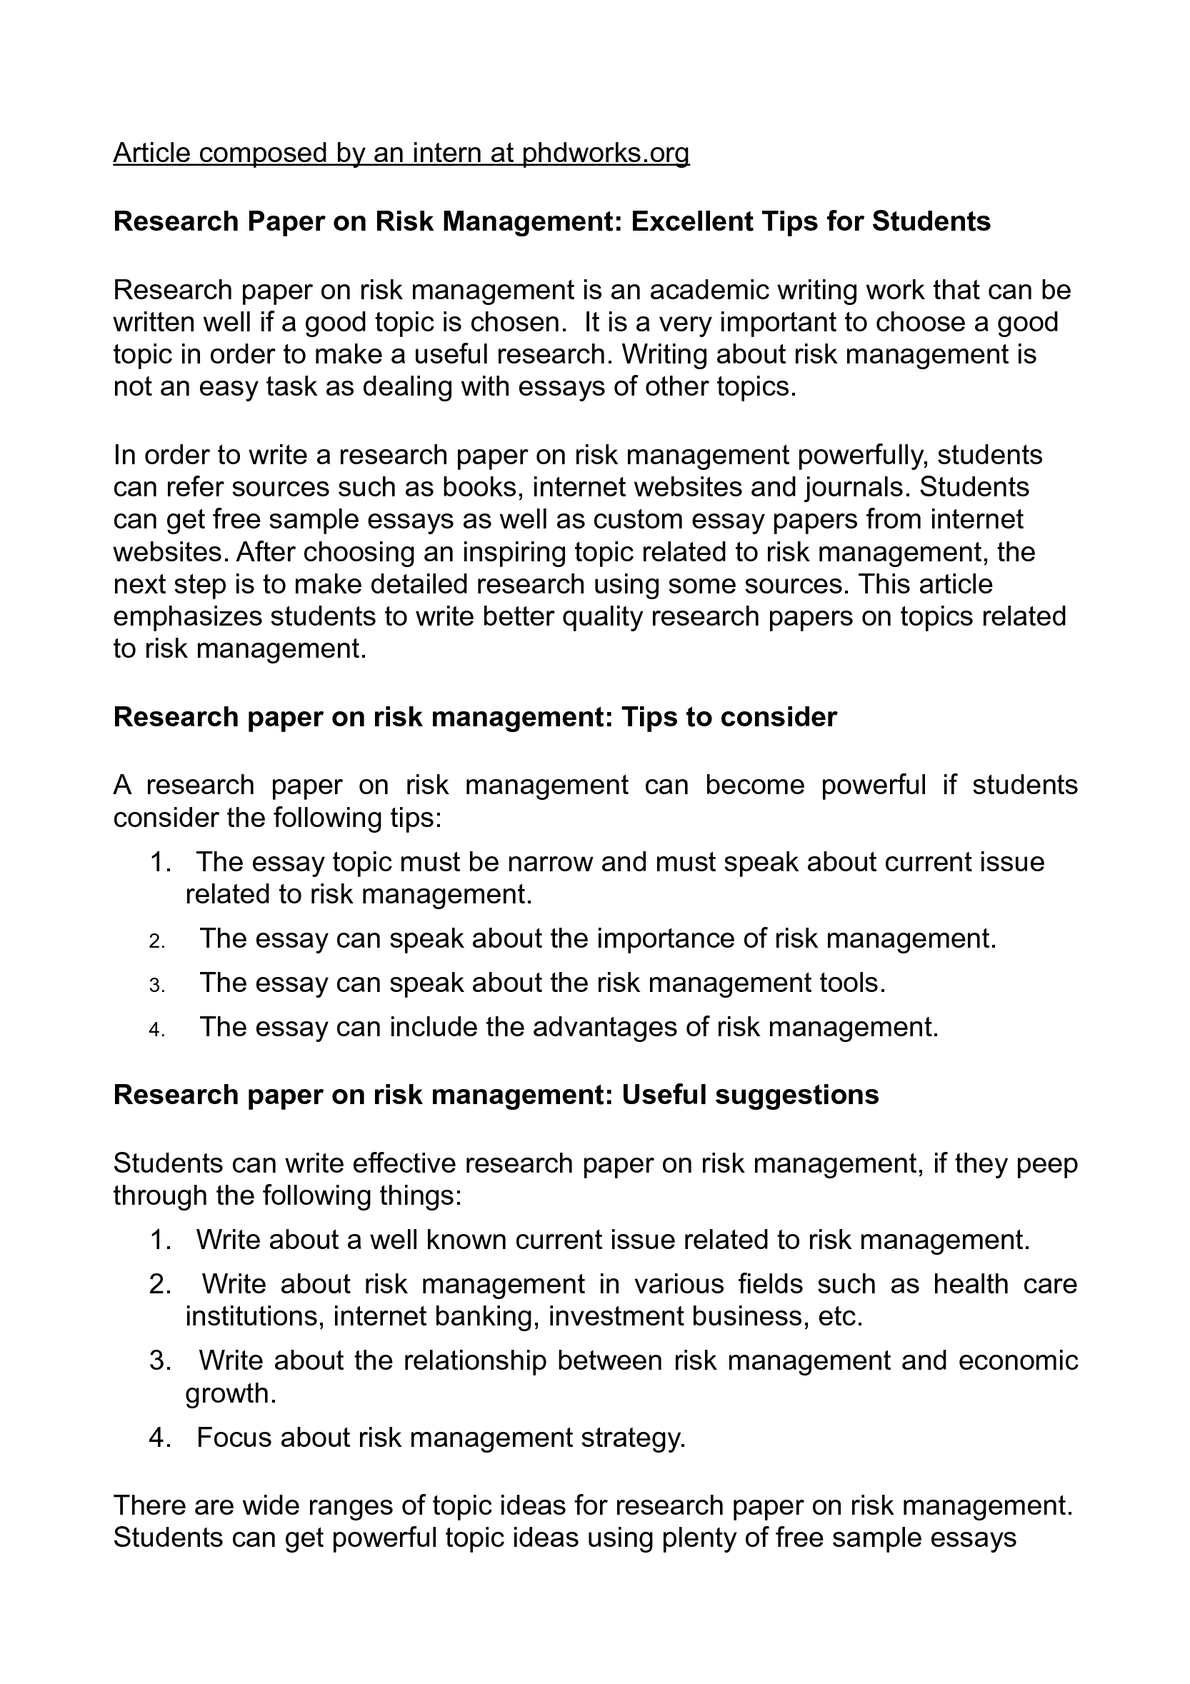 013 Academic Research Paper Ideas Phenomenal Topic Educational Full